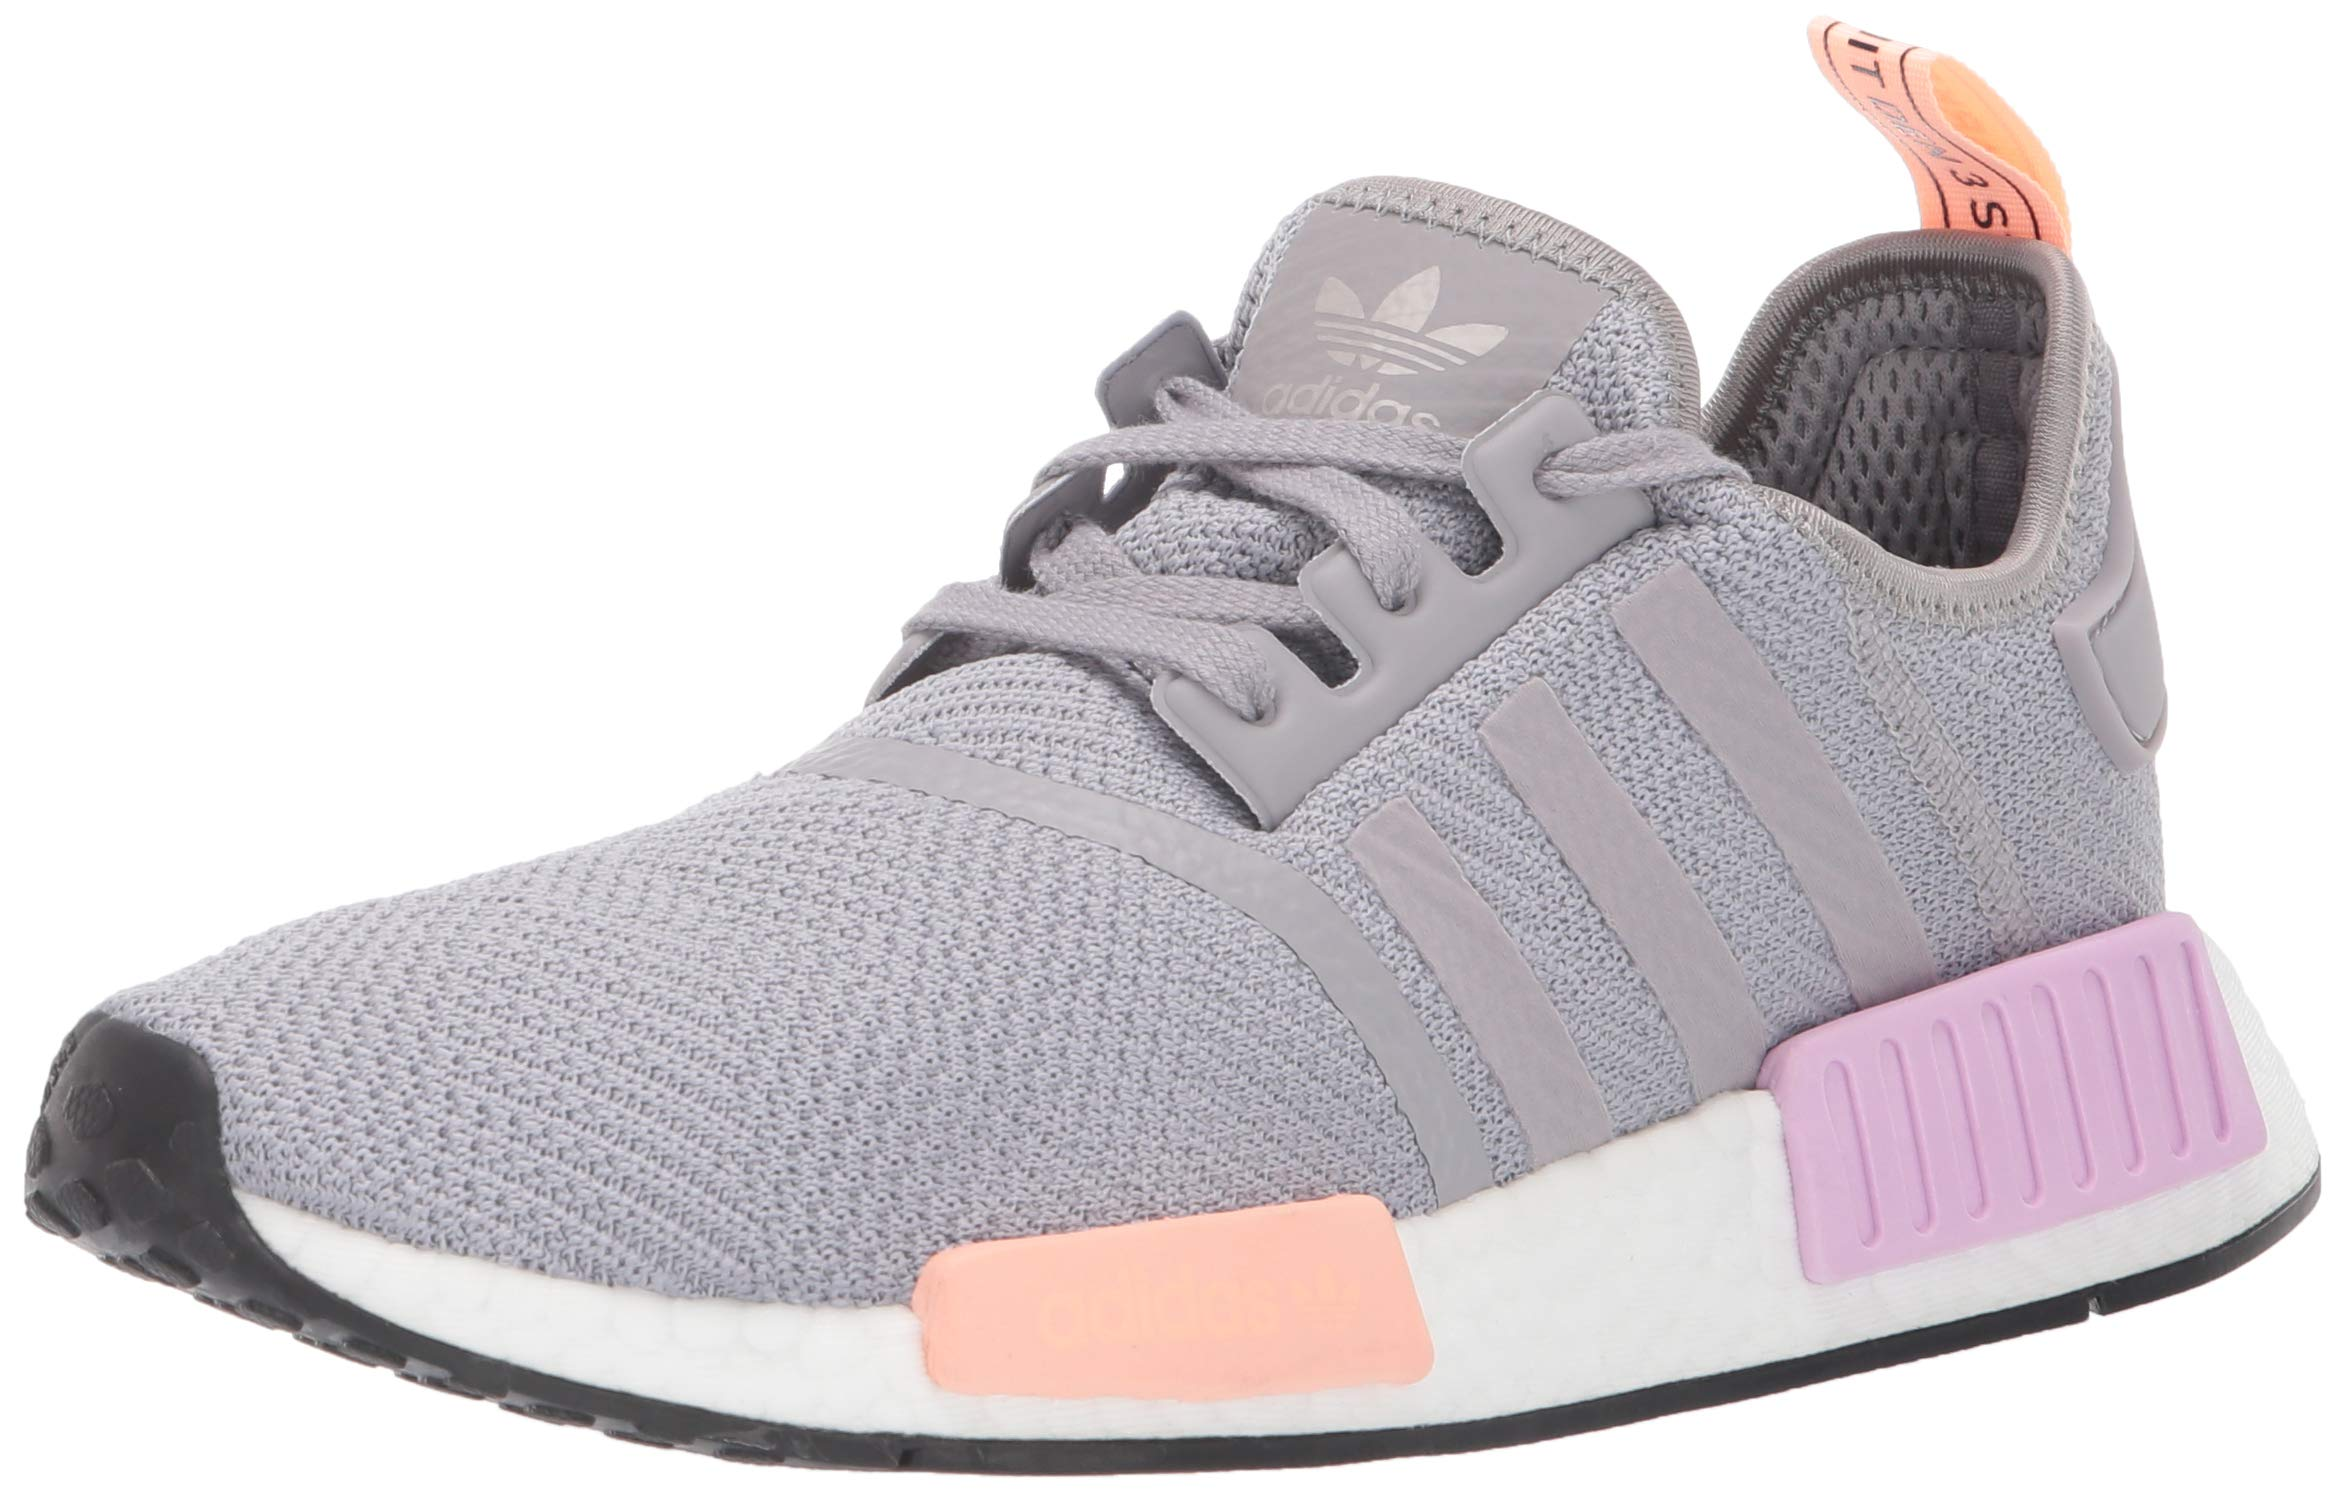 463ca2017fb93 Adidas Nmd R1 Womens Size 10 Top Deals   Lowest Price